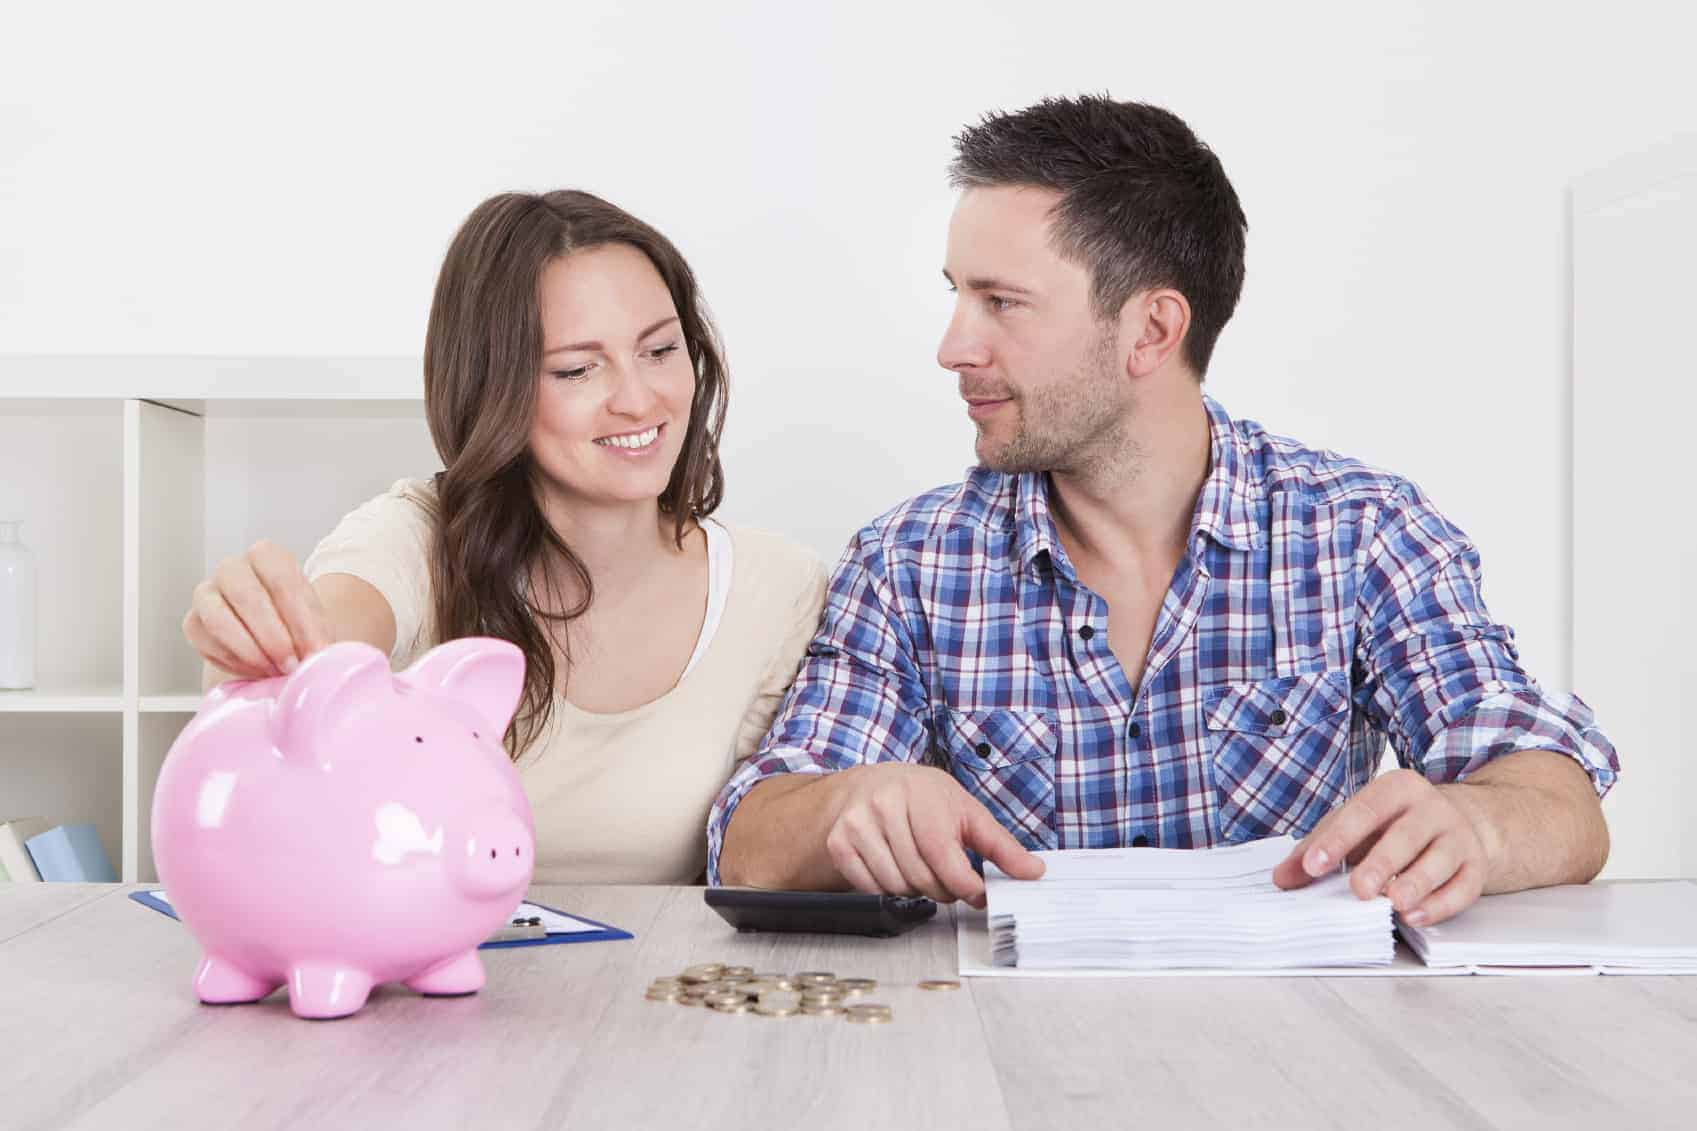 A personal financial management tool can help you build an emergency fund